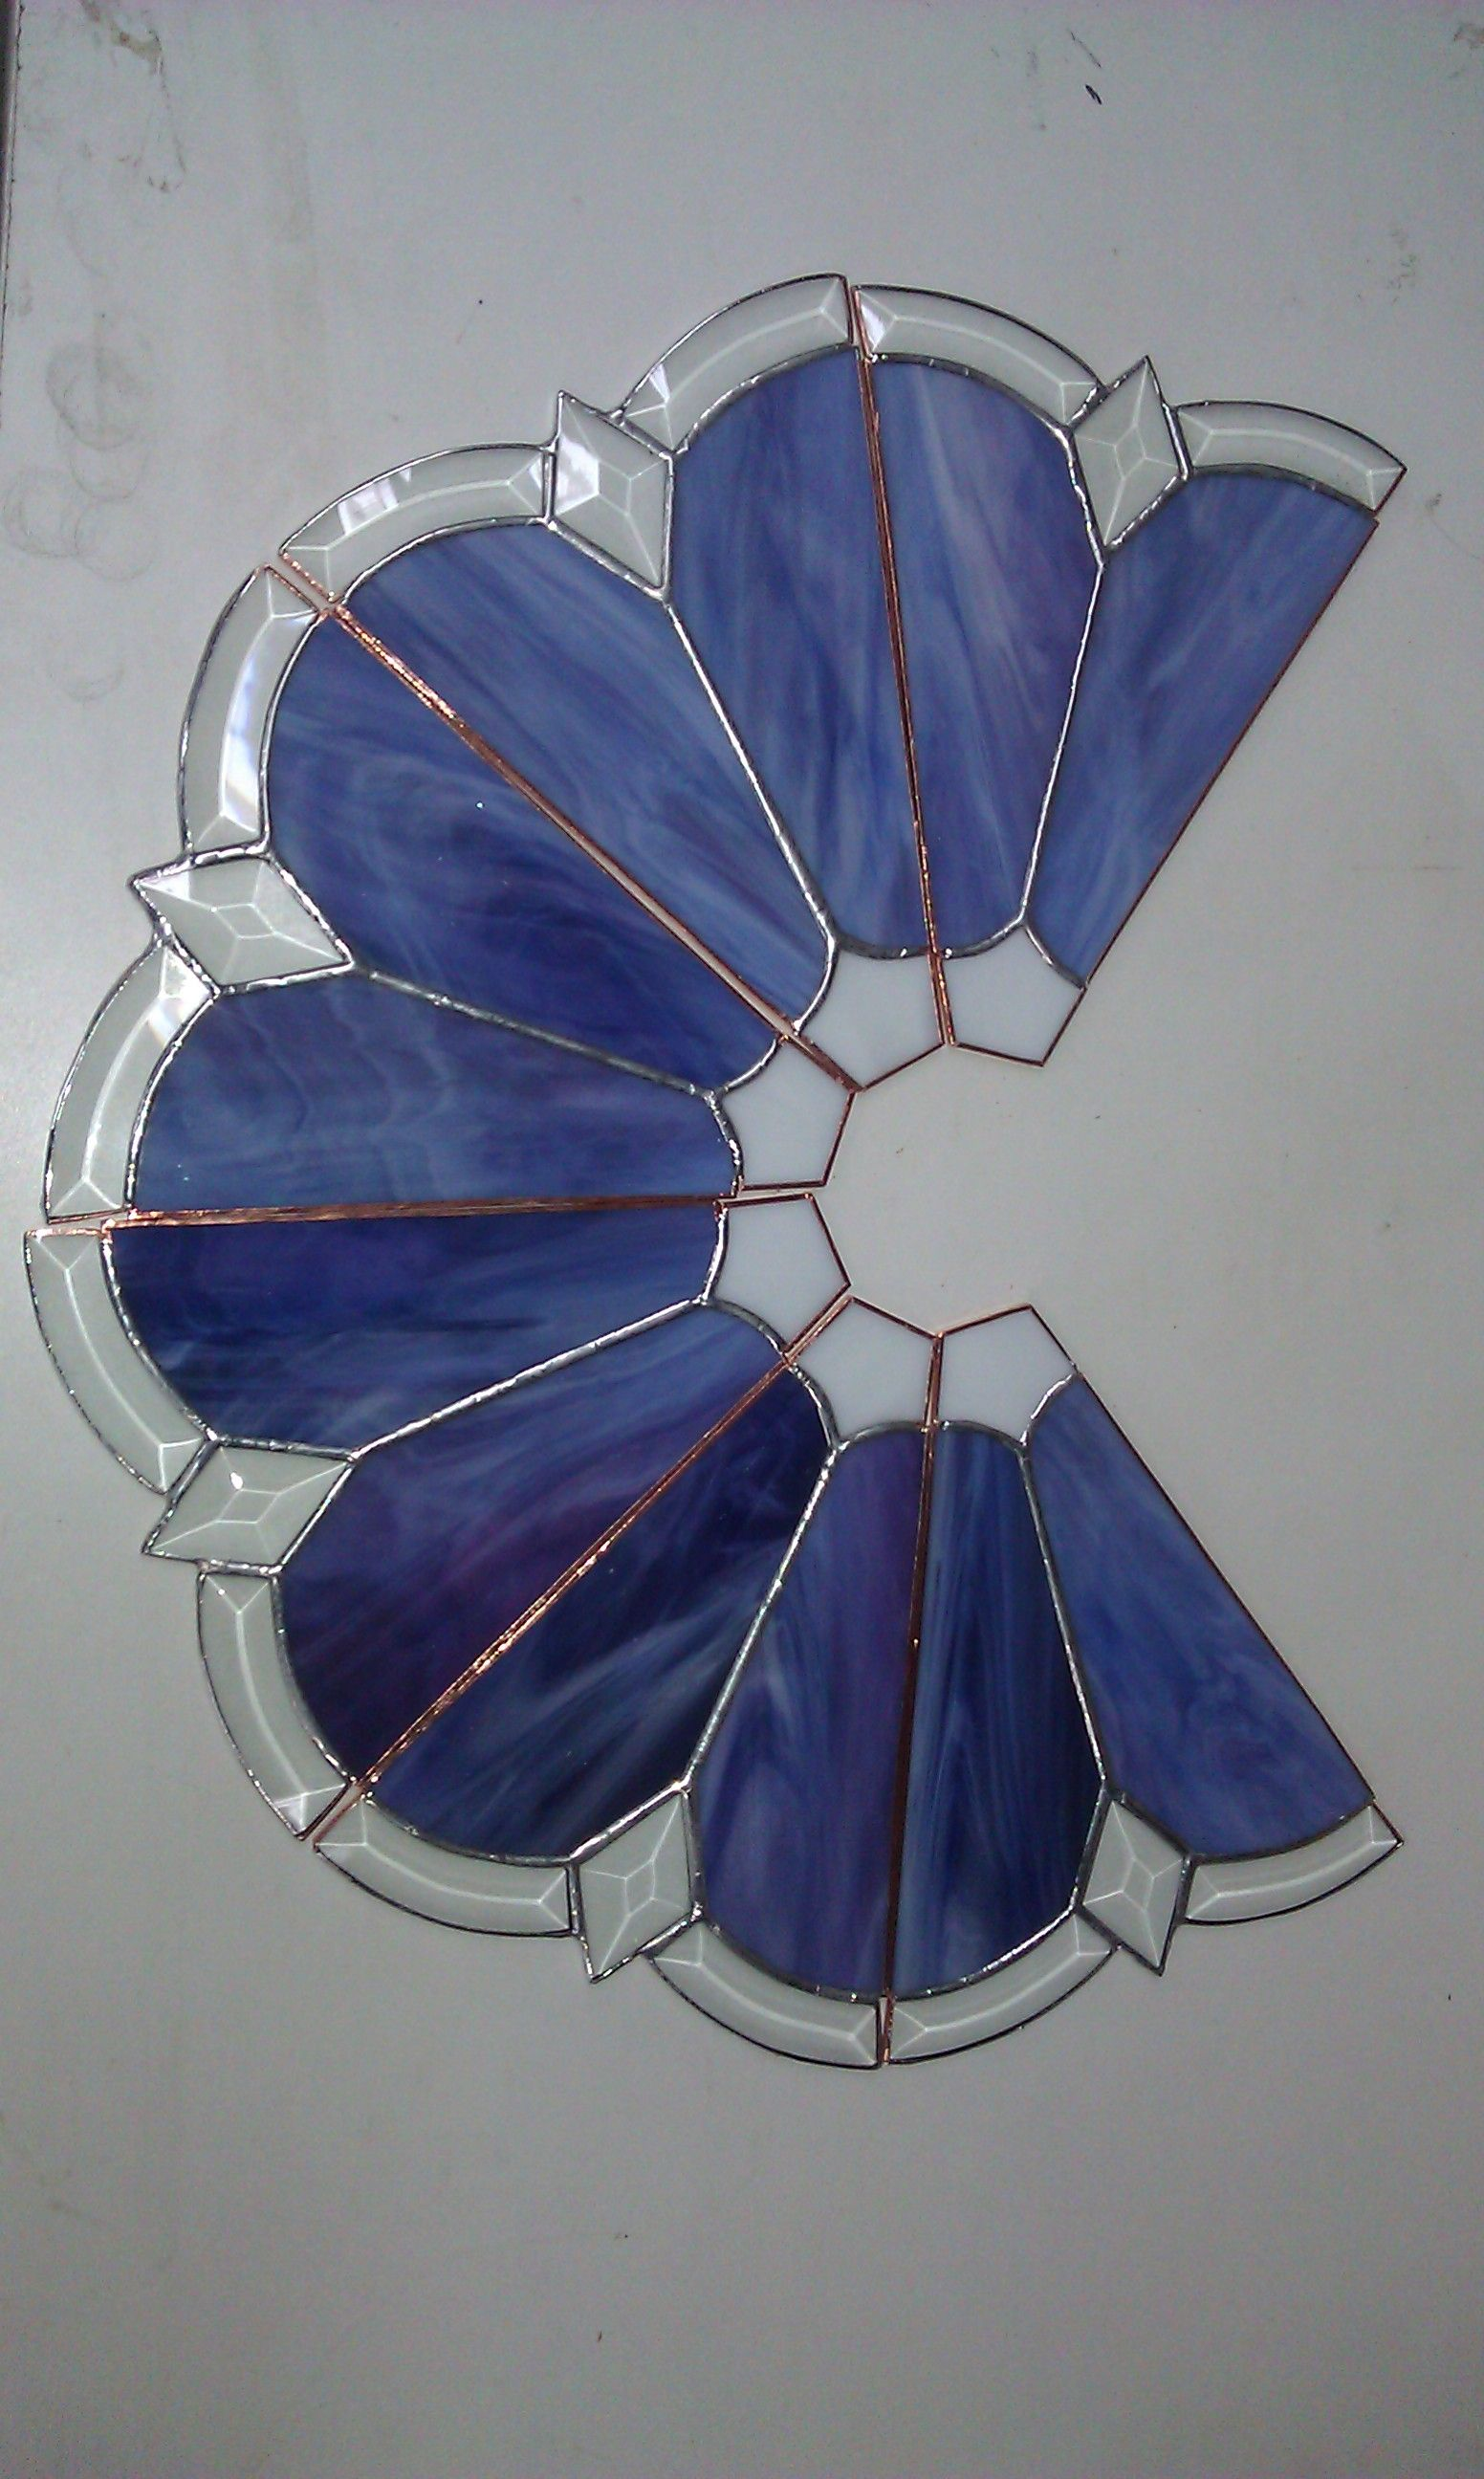 work in progress shade of lamp stained glass pinterest. Black Bedroom Furniture Sets. Home Design Ideas